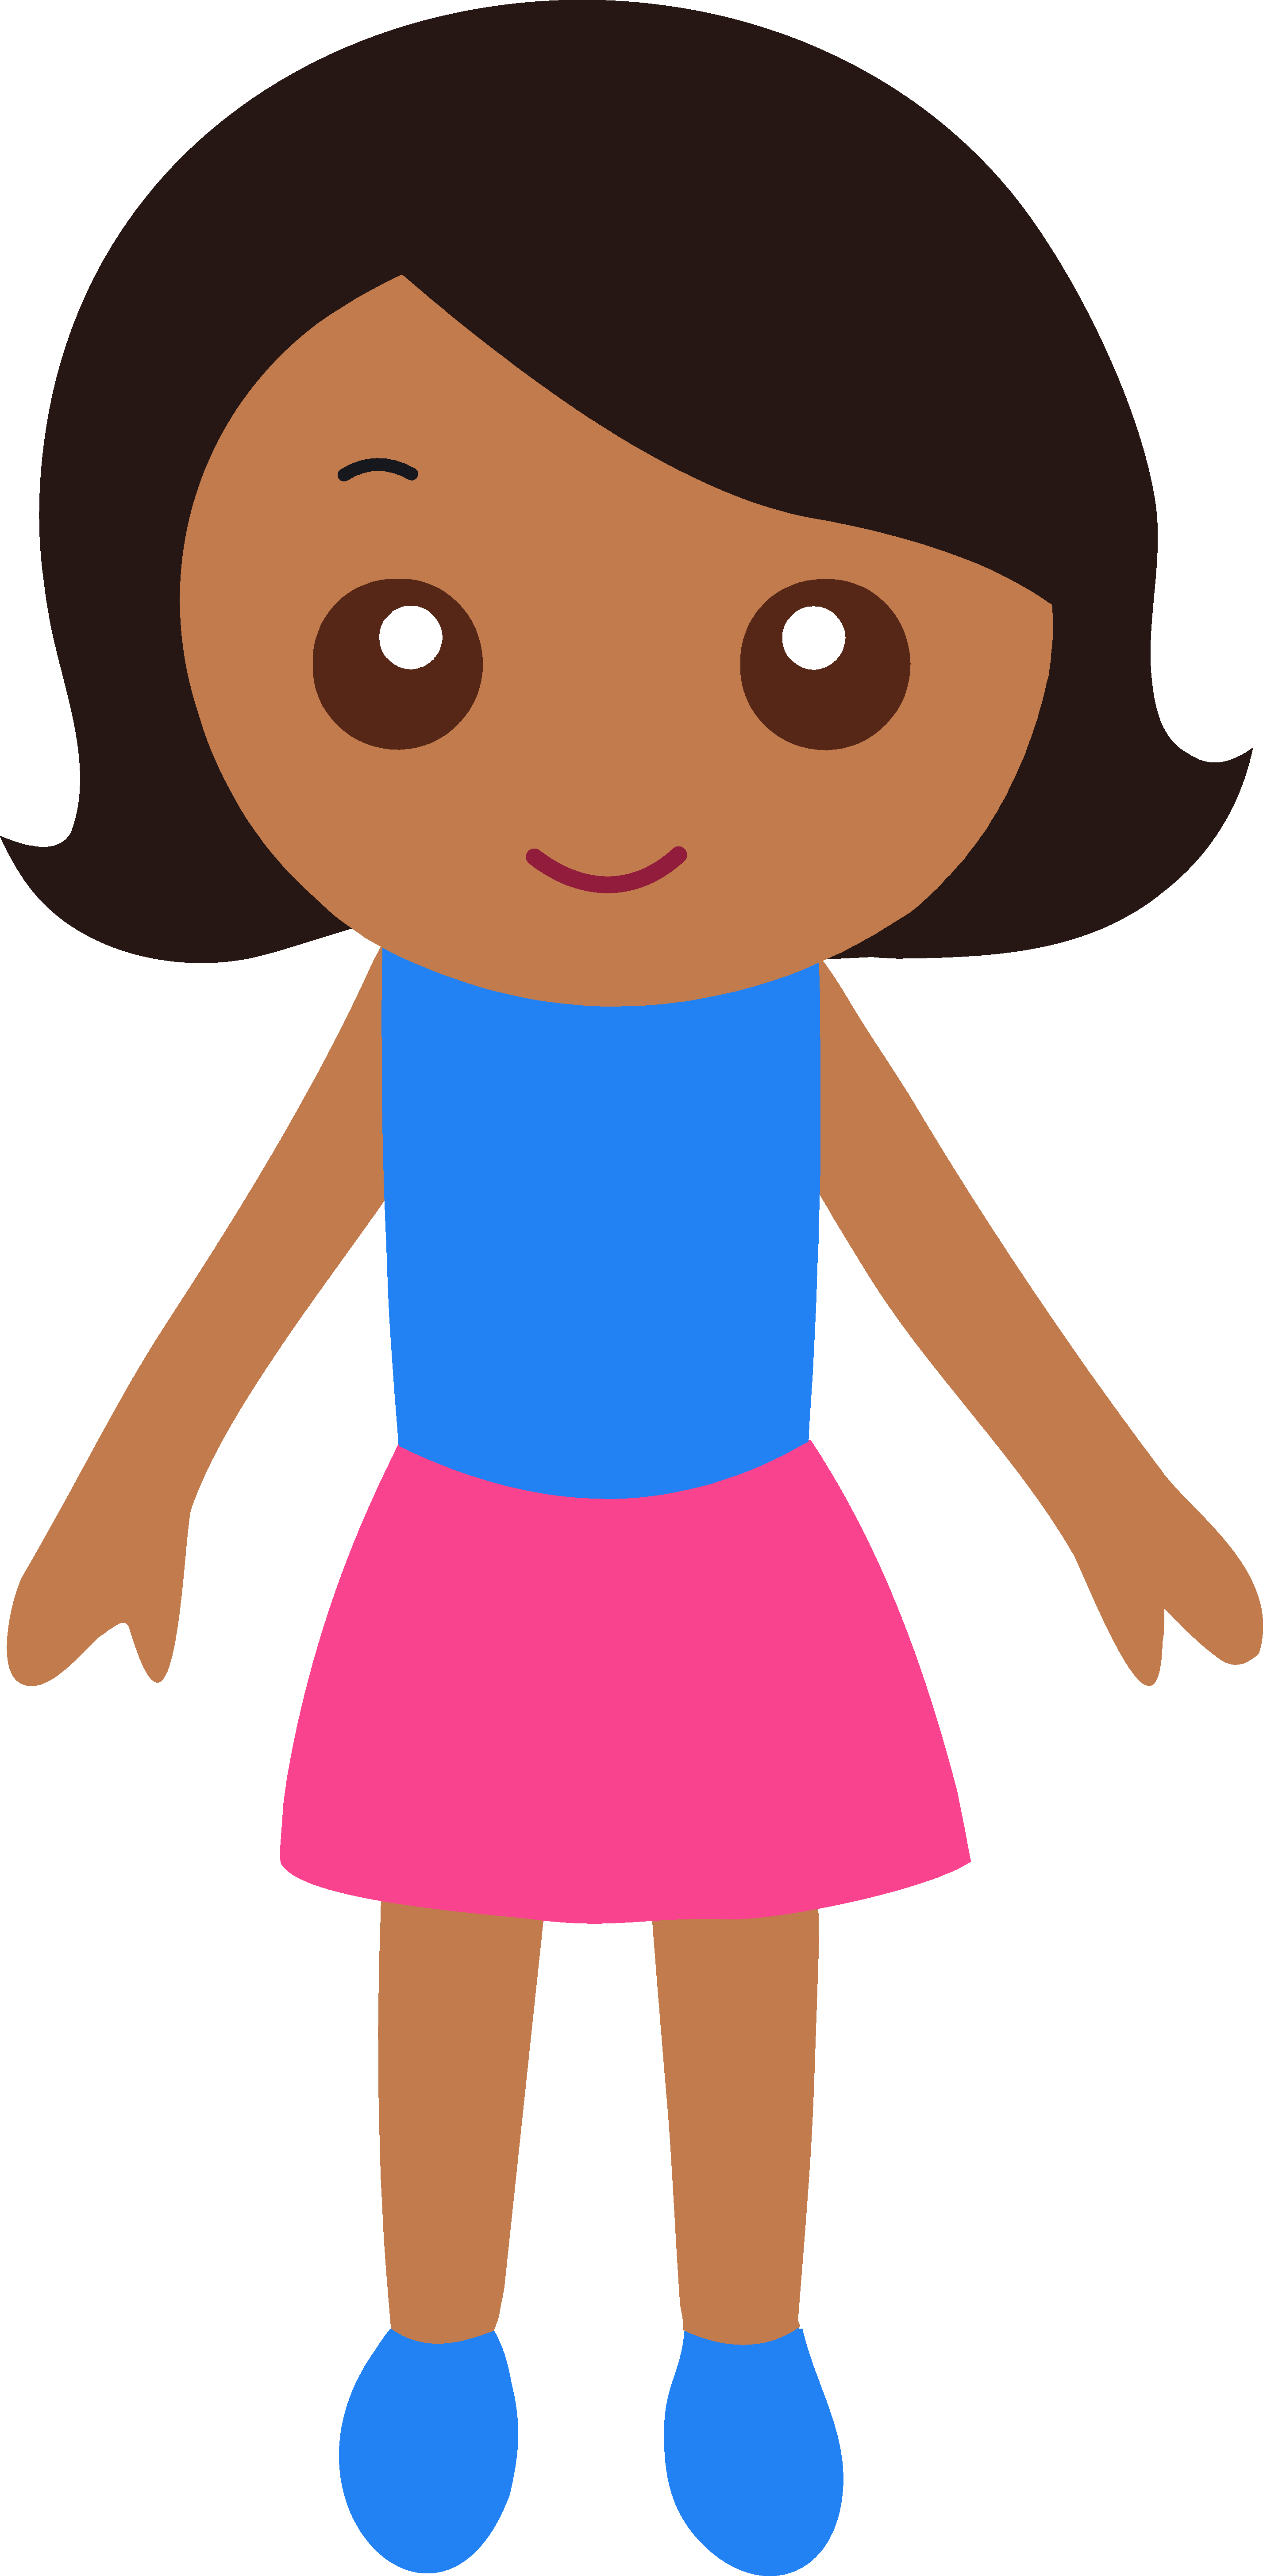 Little girl free clipart picture transparent download Little Girl With Black Hair Free clipart free image picture transparent download